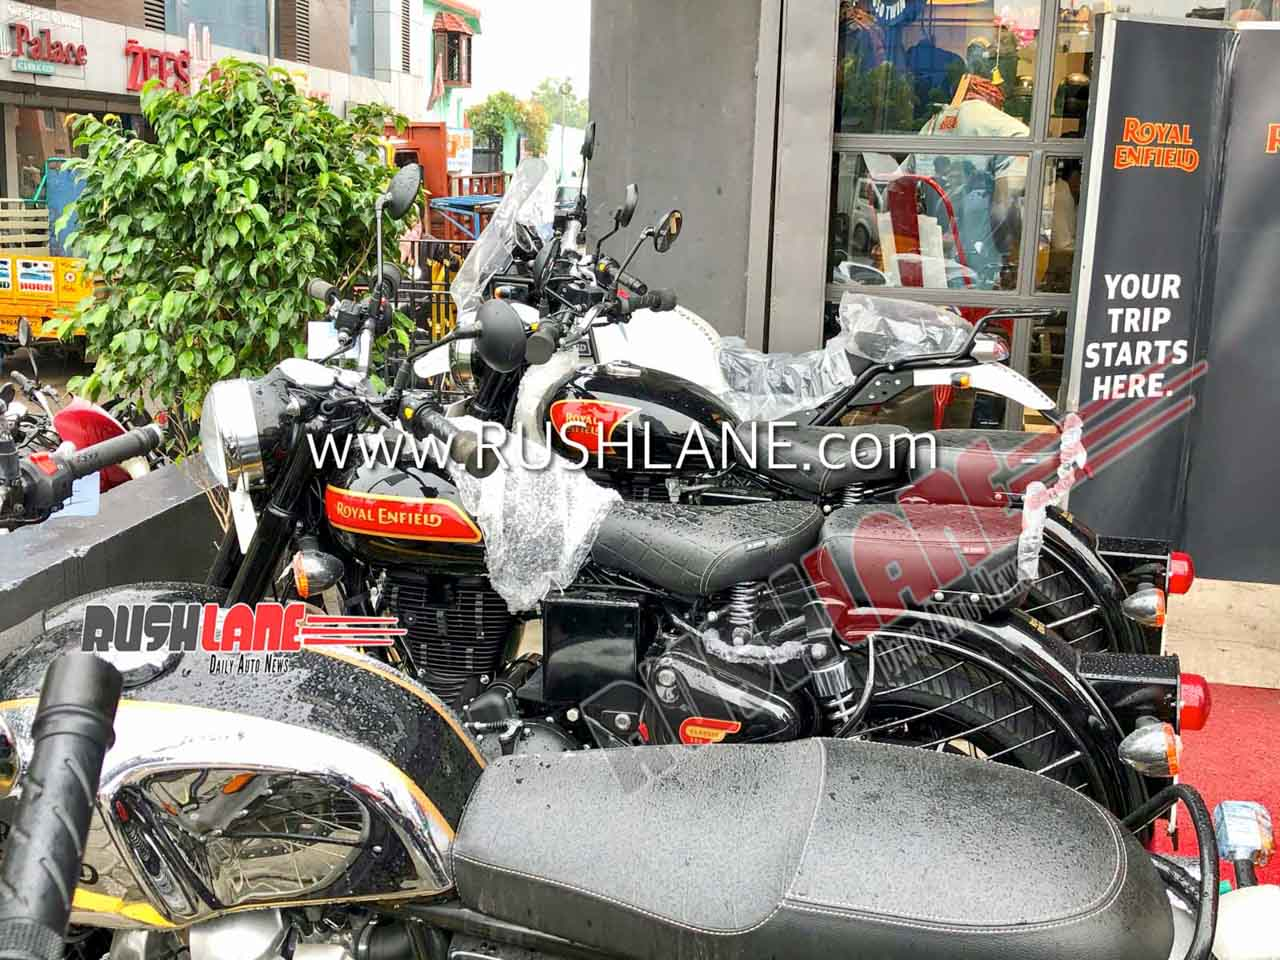 royal-enfield-classic-350-bs6-dealership (1)